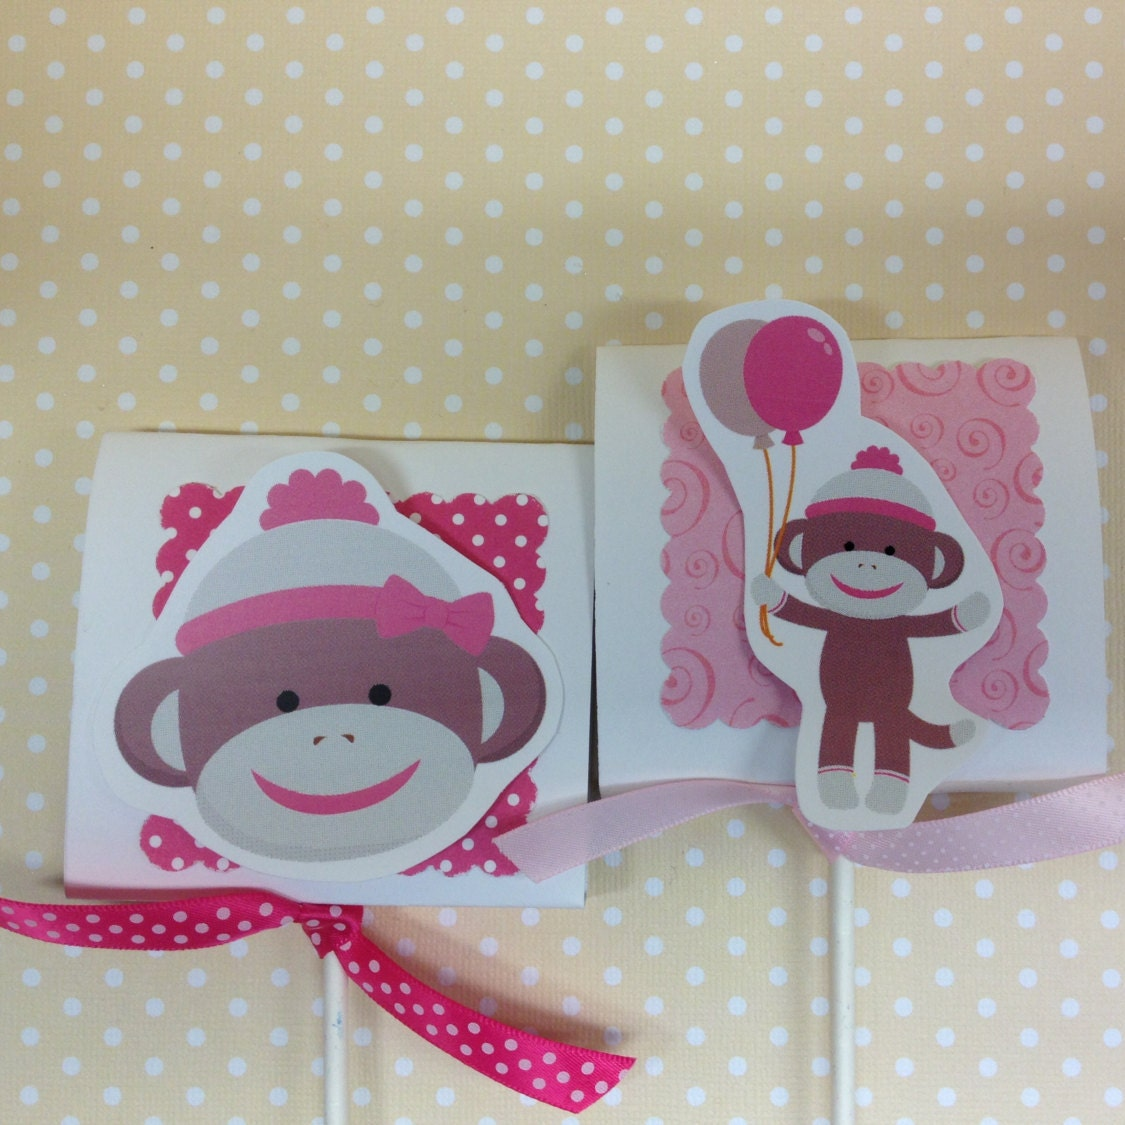 Monkey Baby Shower Party Favors: Pink Sock Monkey Party Or Baby Shower Lollipop Favors Set Of